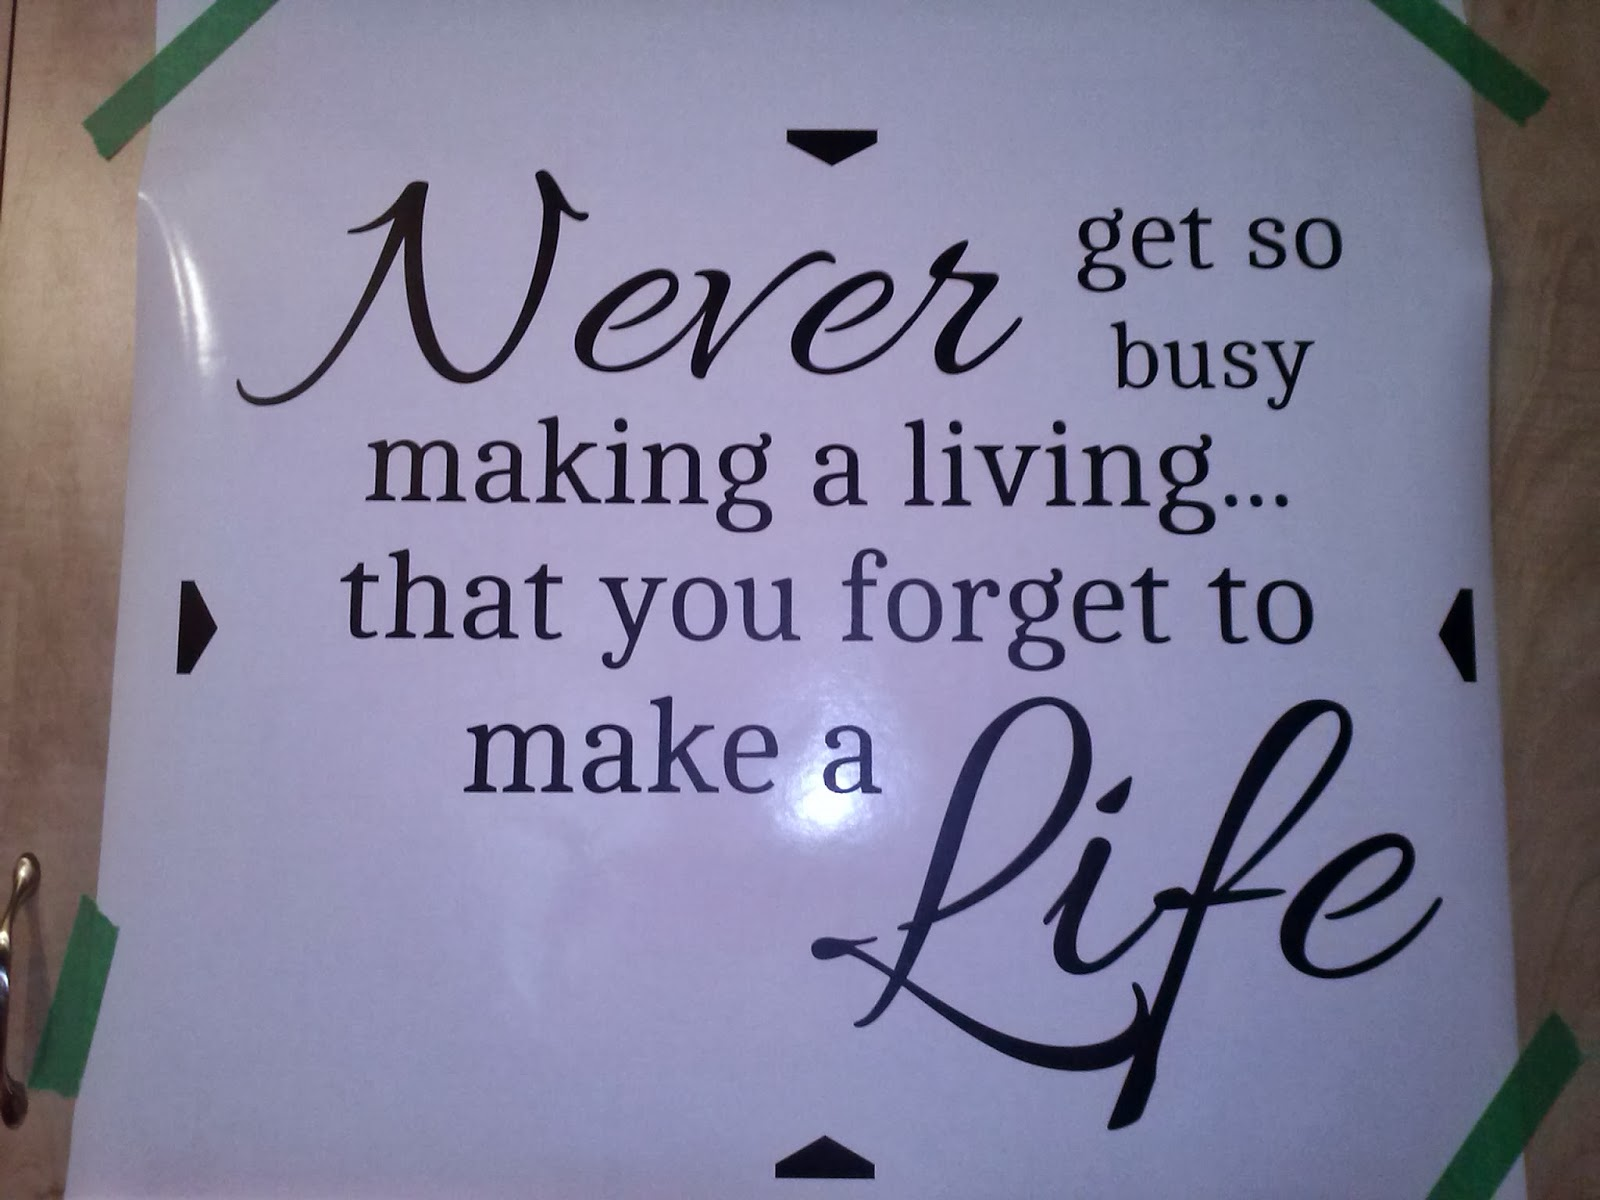 Never get so busy making a living. That you forget to make a life